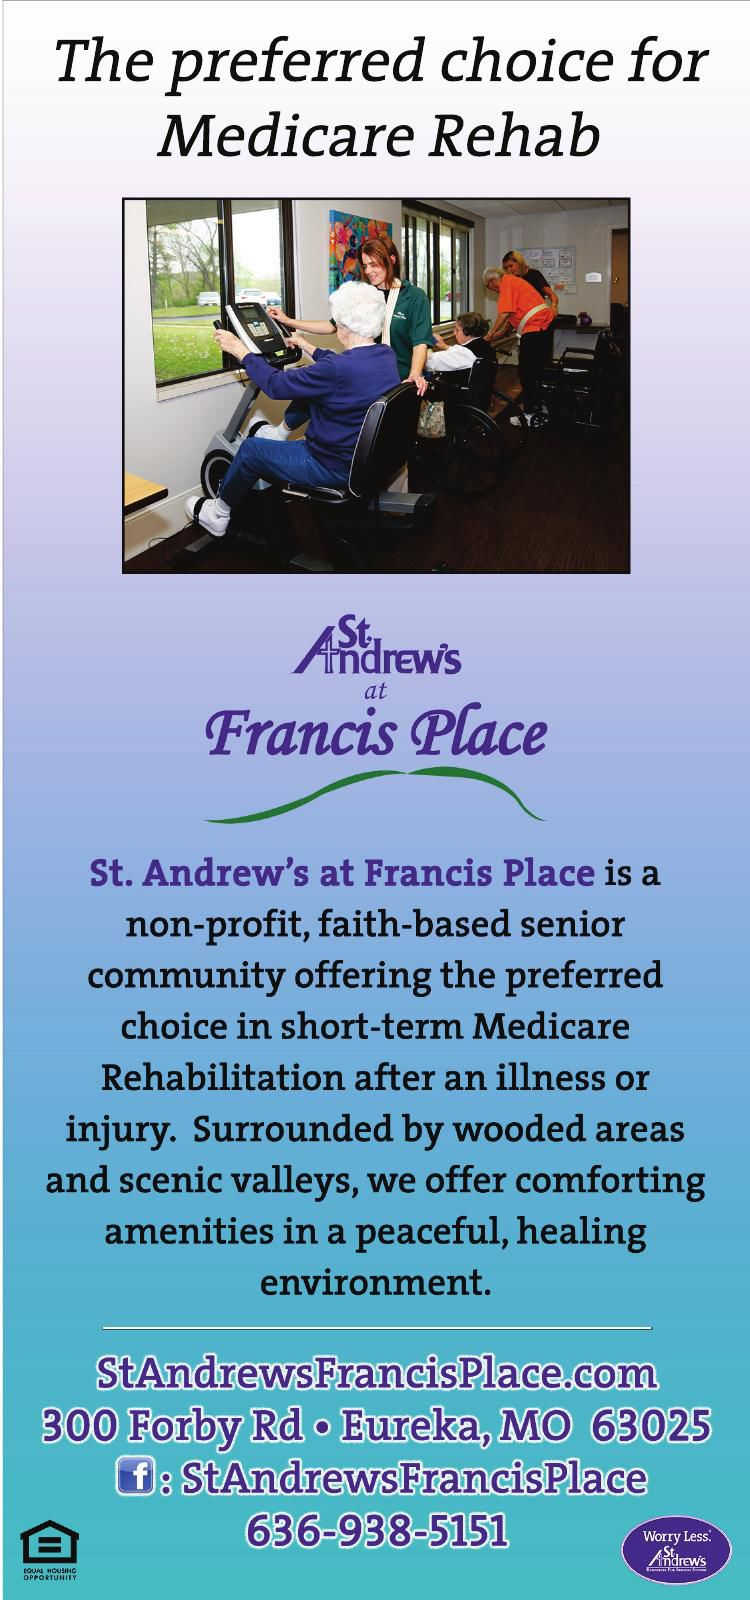 St. Andrews at Francis Place